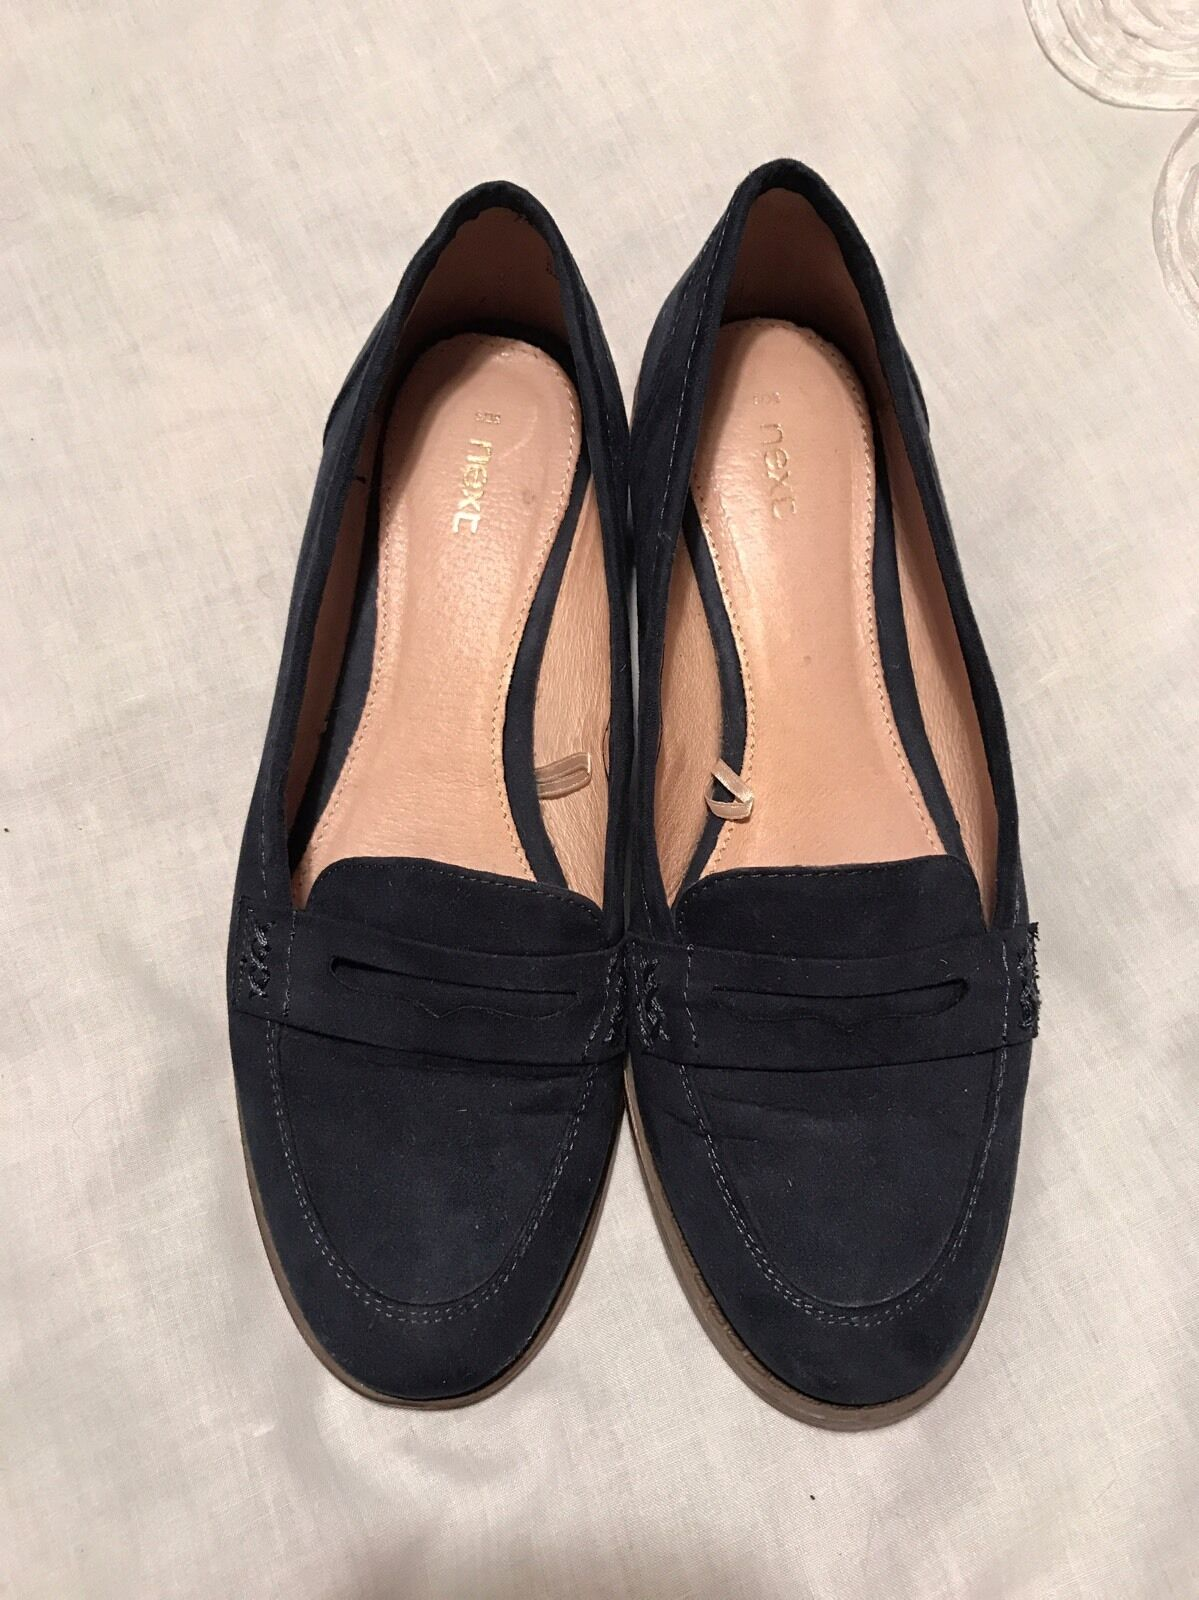 Next Women's Slip On Shoes Size 5